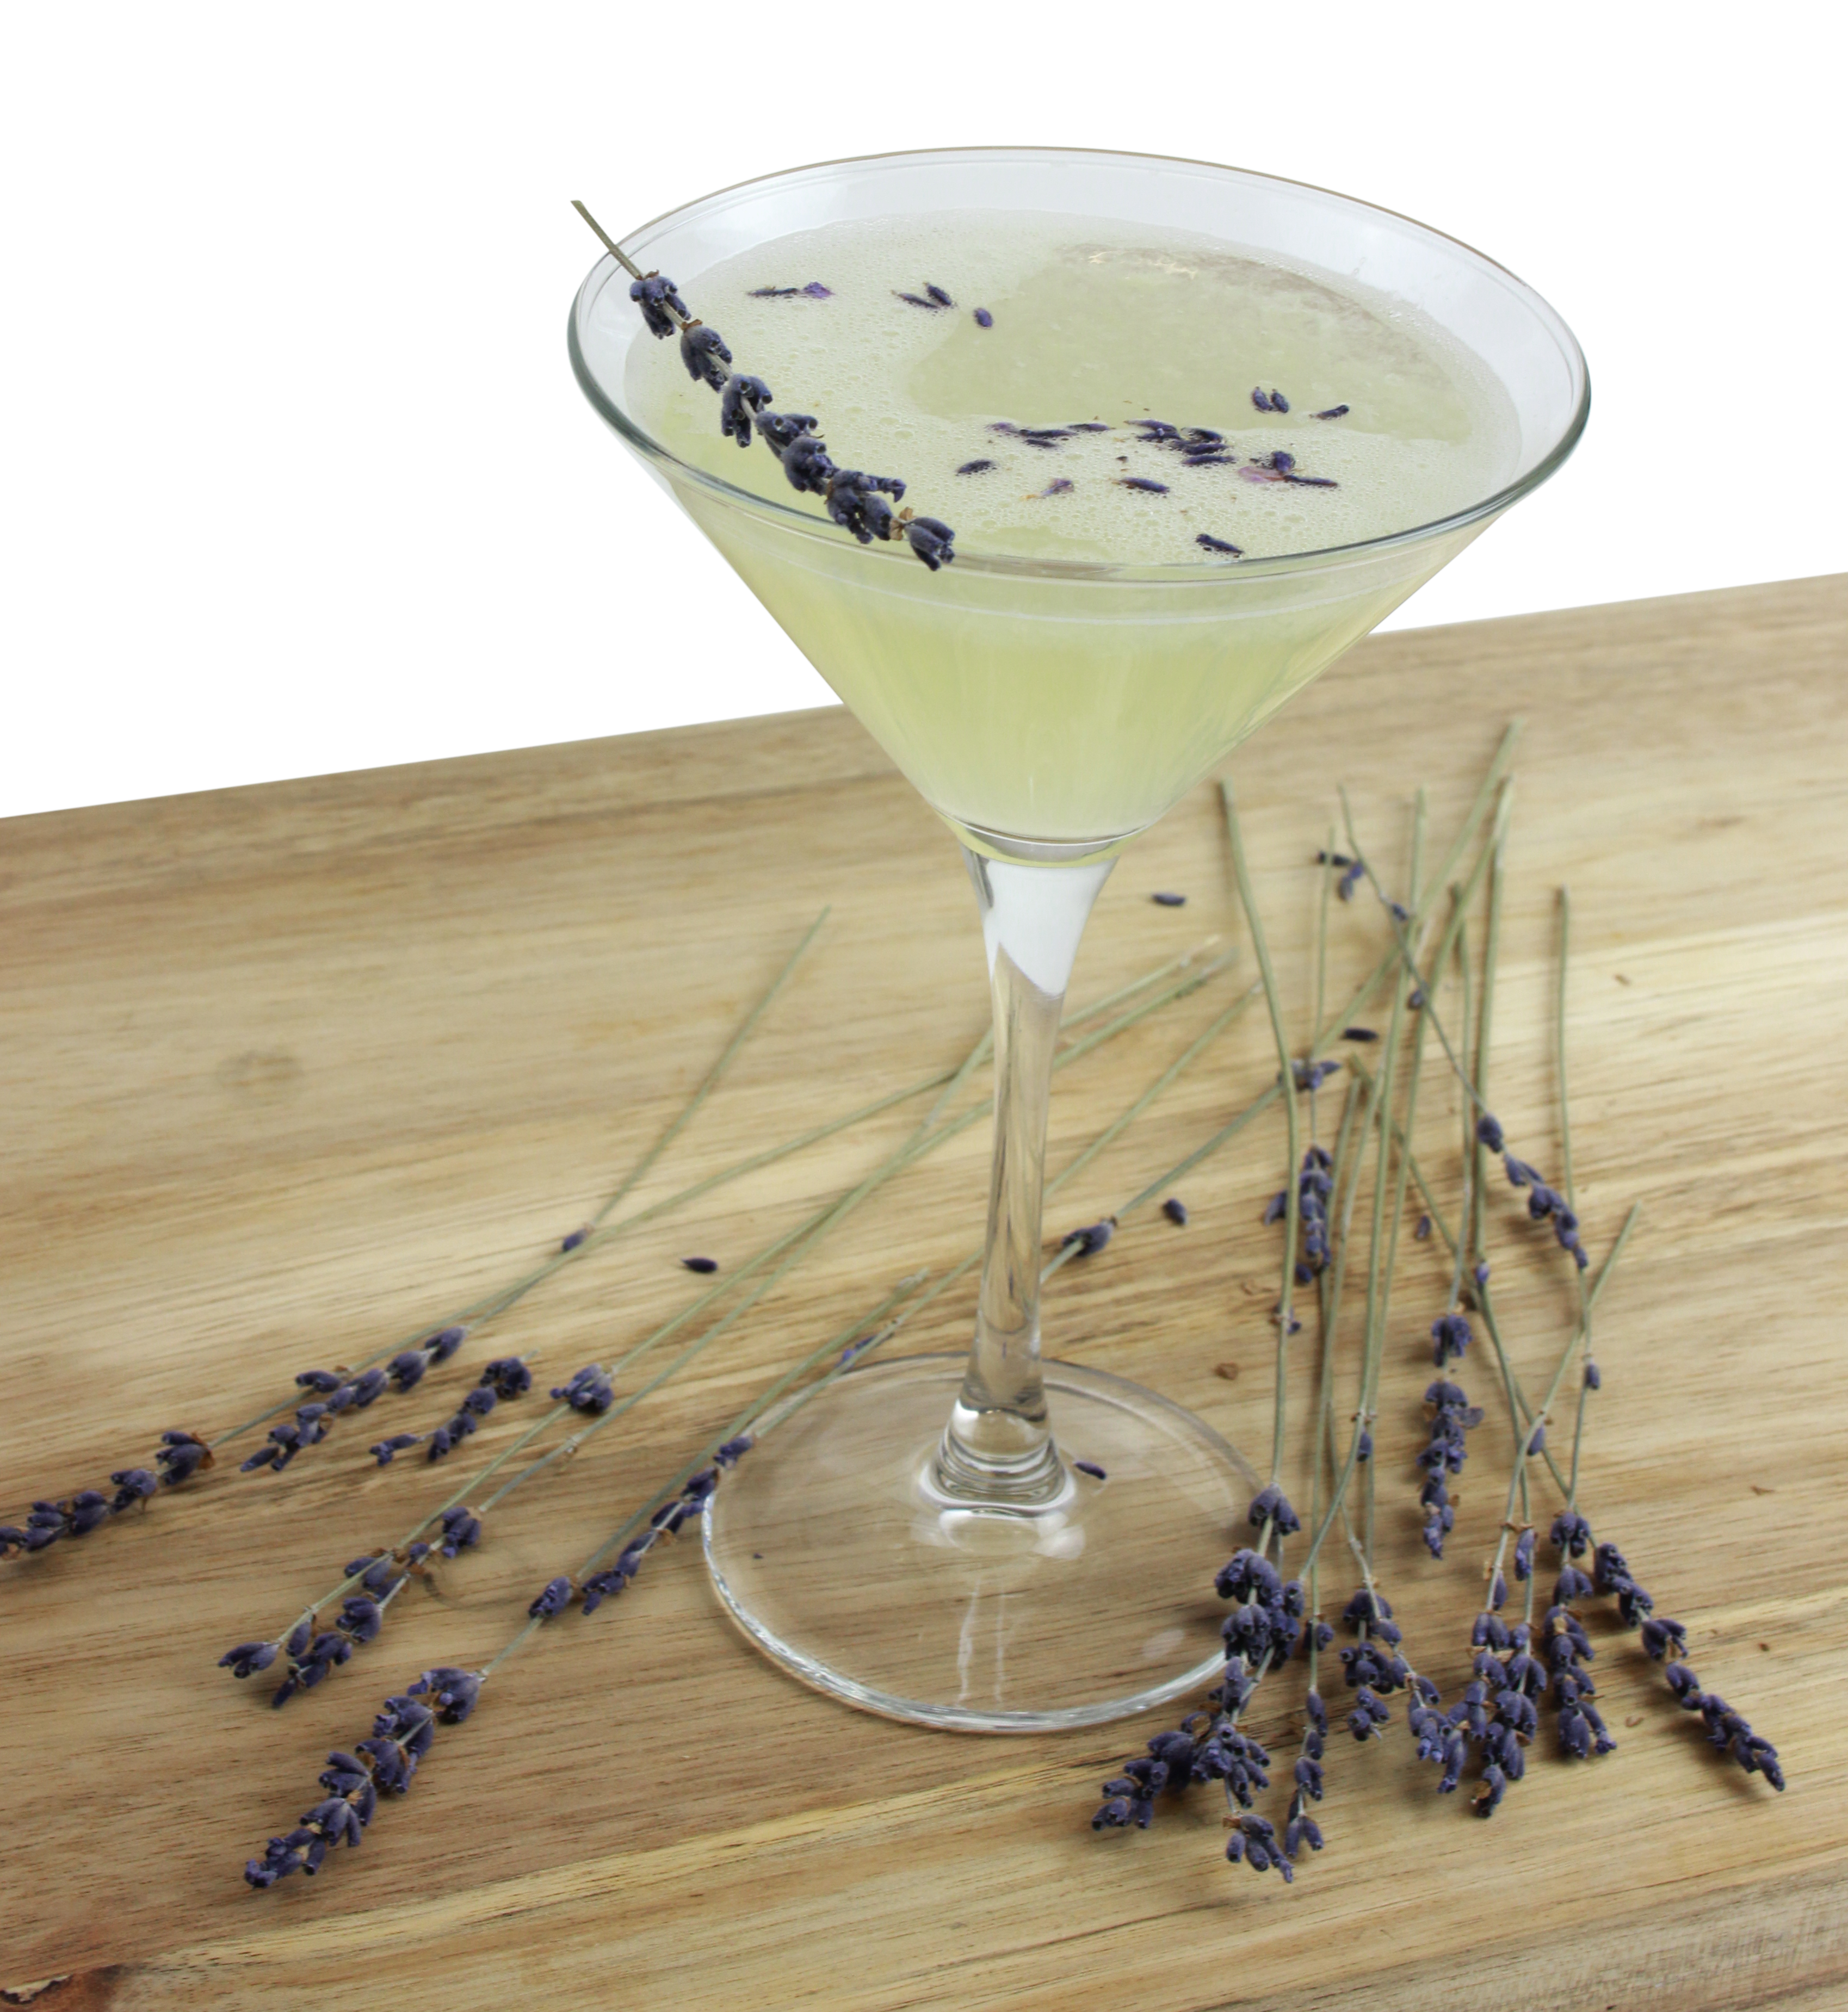 True French Lavender: The Newest Edition to the Flavour Field Family